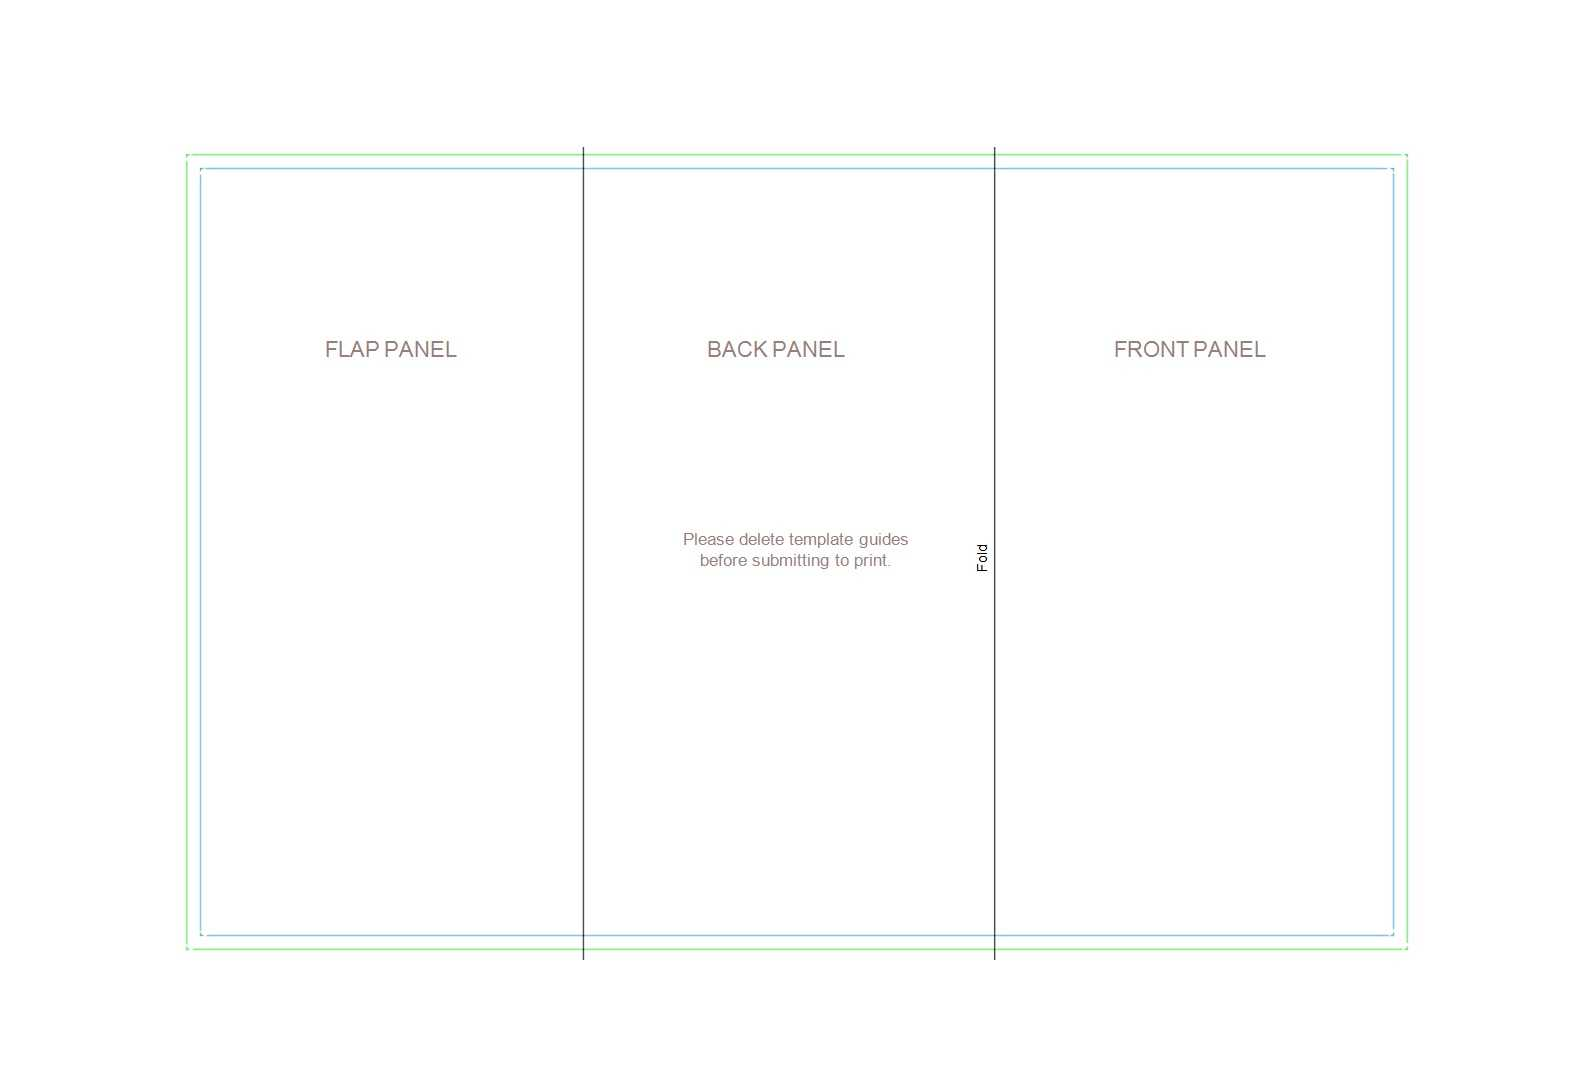 50 Free Pamphlet Templates [Word / Google Docs] ᐅ Template Lab With Regard To Brochure Templates Google Drive